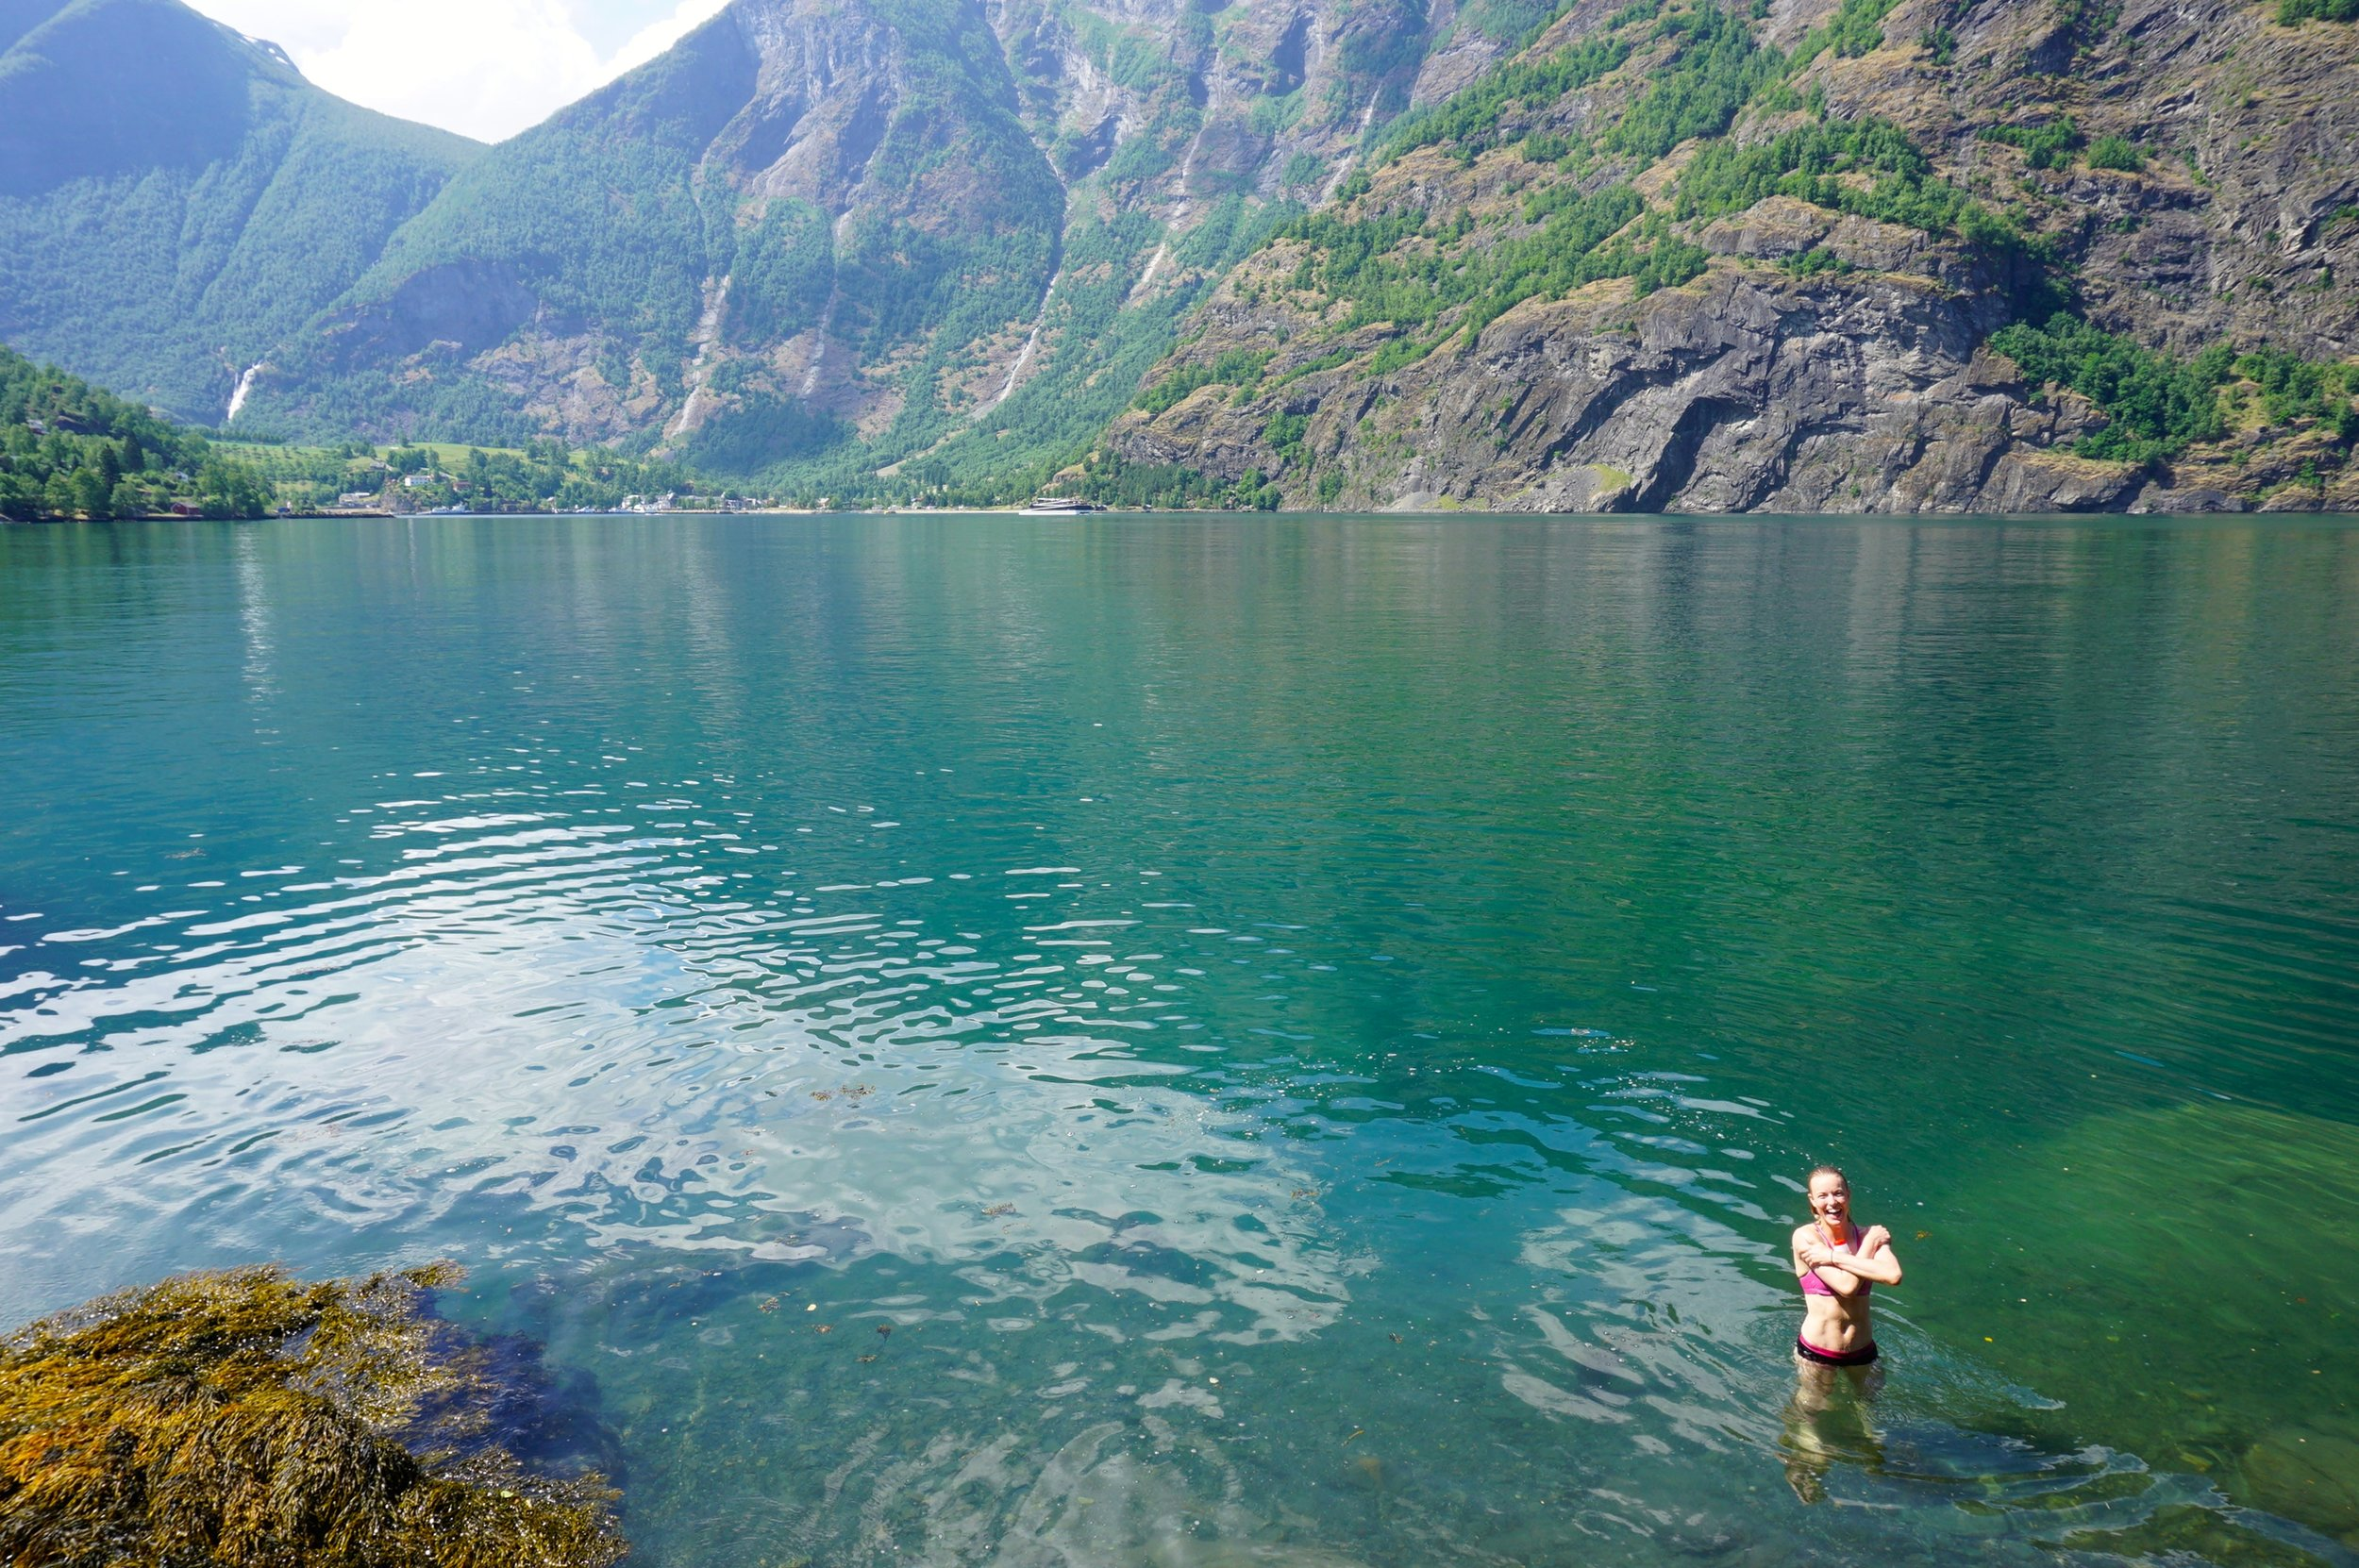 Finding a cute lunch and swim spot near Flam!